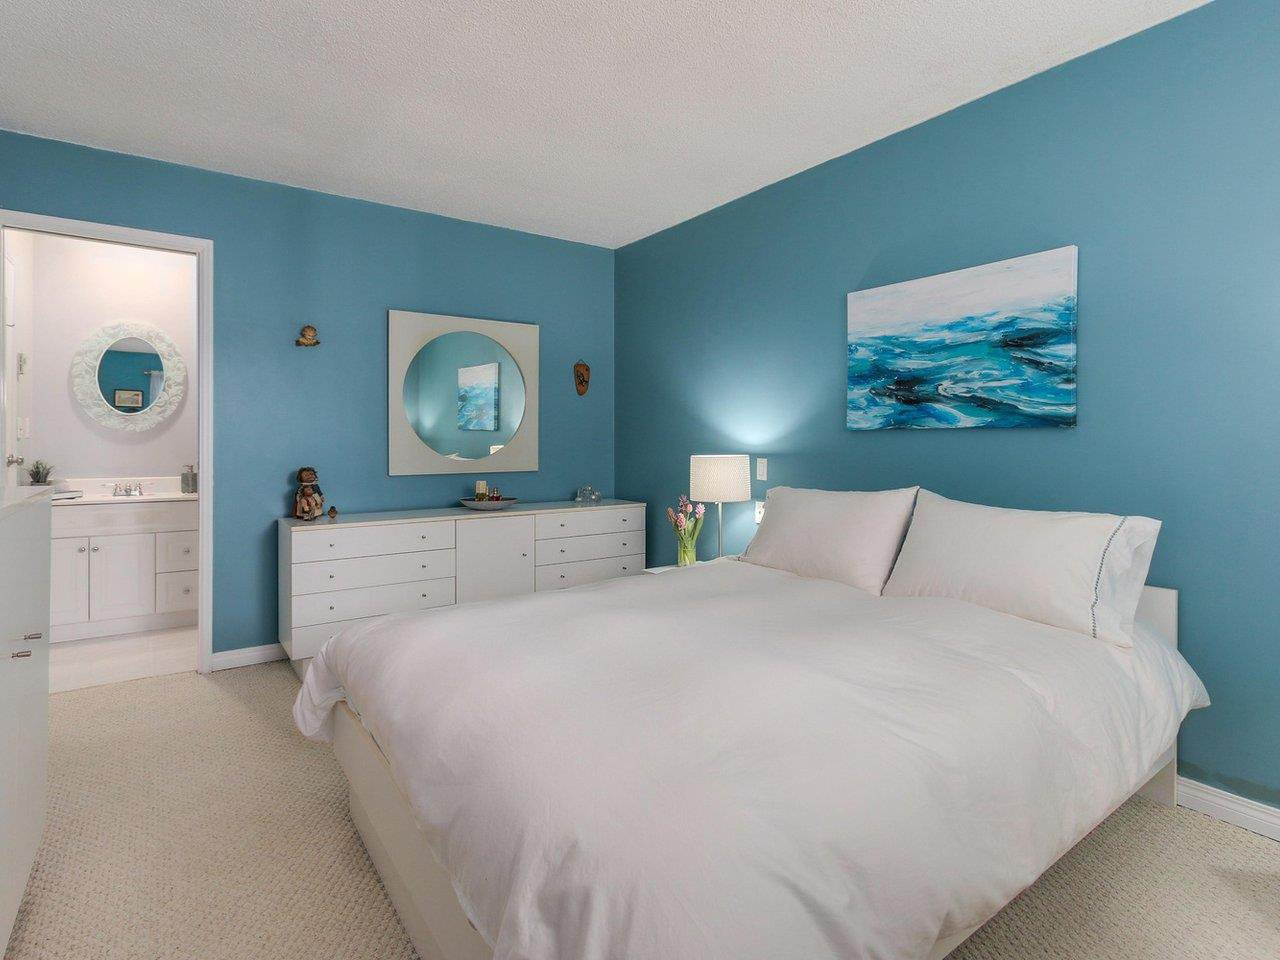 """Photo 10: Photos: 10550 HOLLYMOUNT Drive in Richmond: Steveston North House for sale in """"HOLLIES"""" : MLS®# R2366603"""